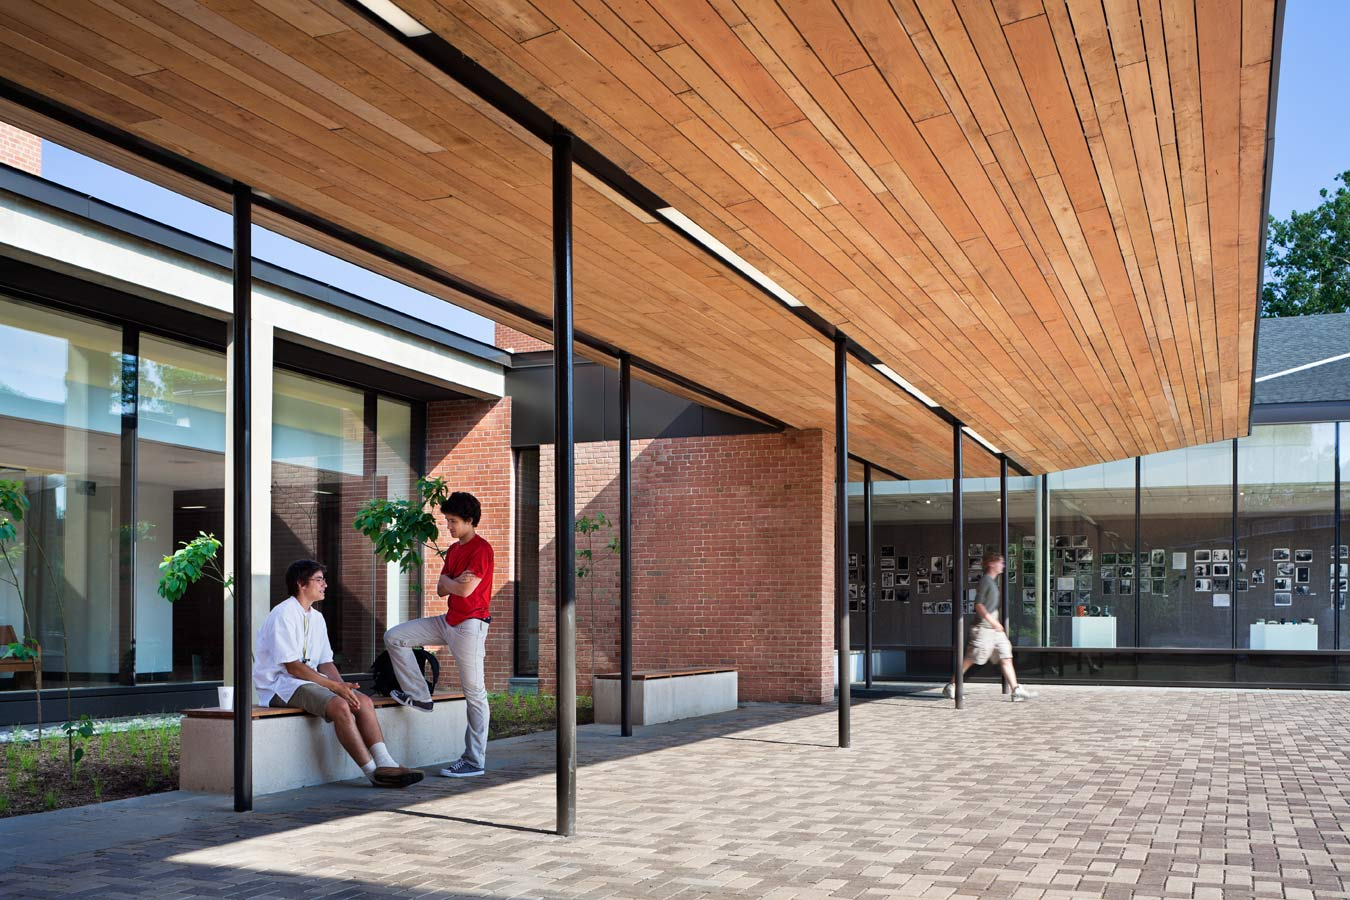 <p>The canopy and benches create a transition space between the life of the renewed plaza and the Meeting House. A narrow, tree-lined garden filters light entering the central lobby and gallery. <br><small>© Michael Moran/OTTO</small></p>